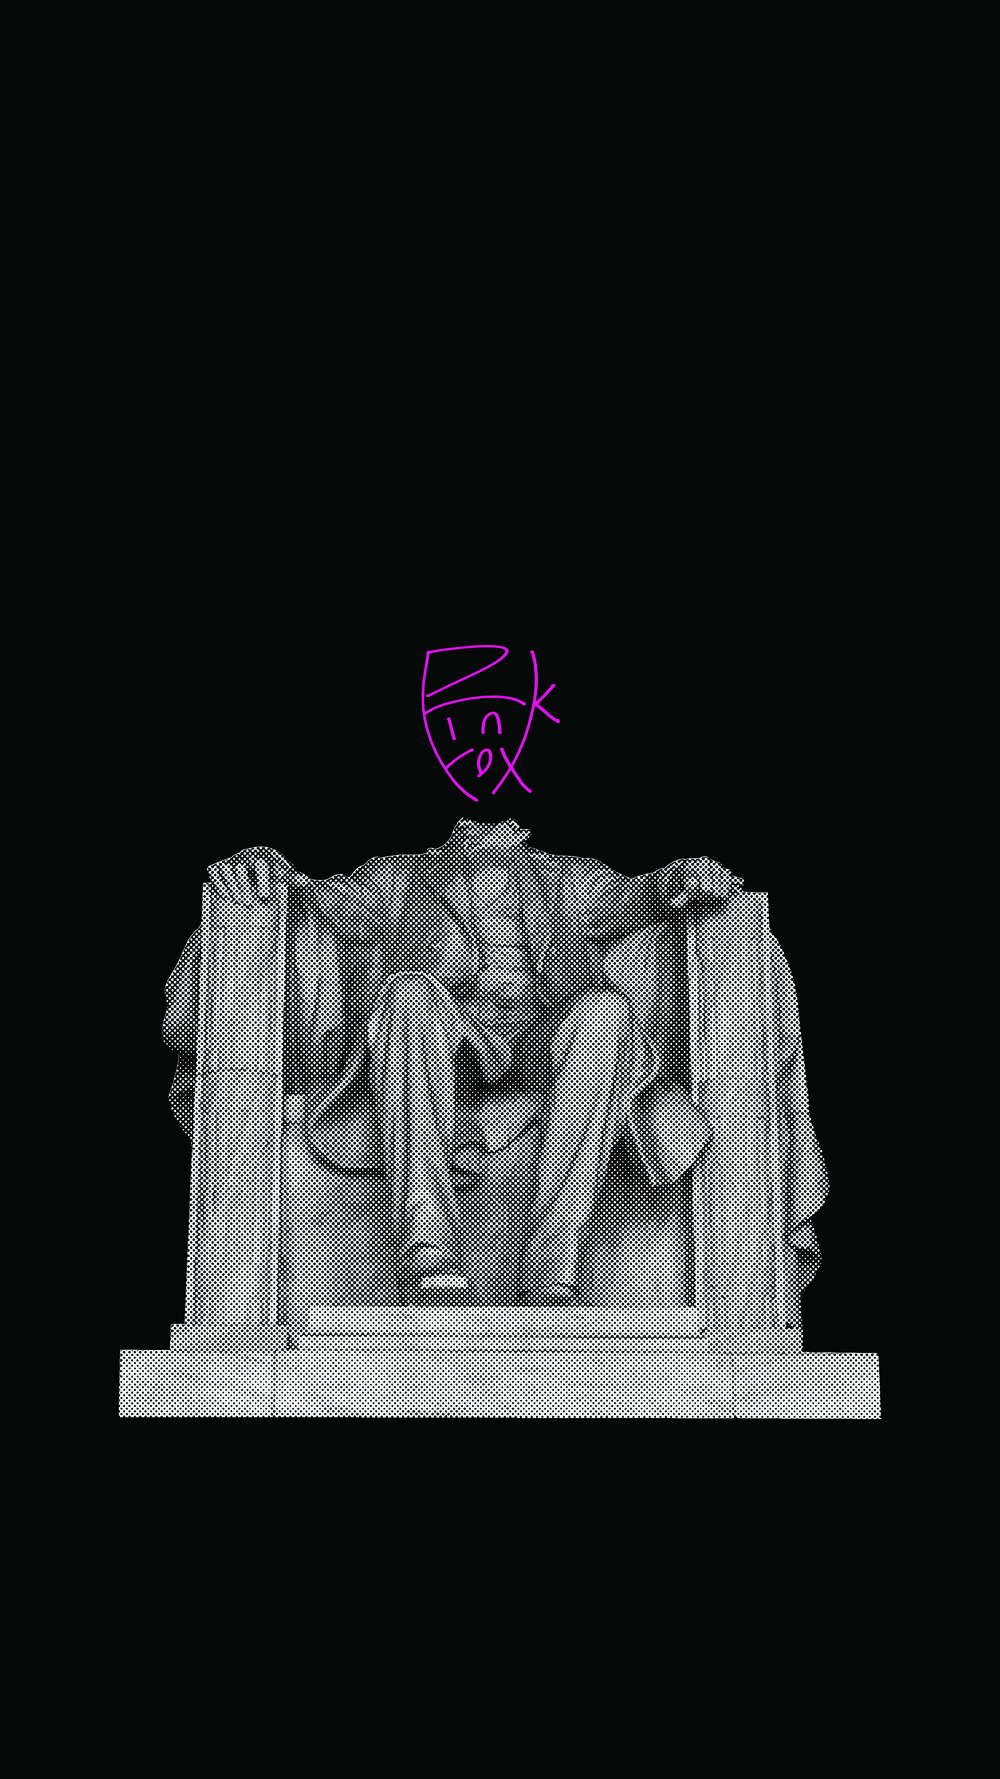 iPhone 8 BG - Lincoln.jpg